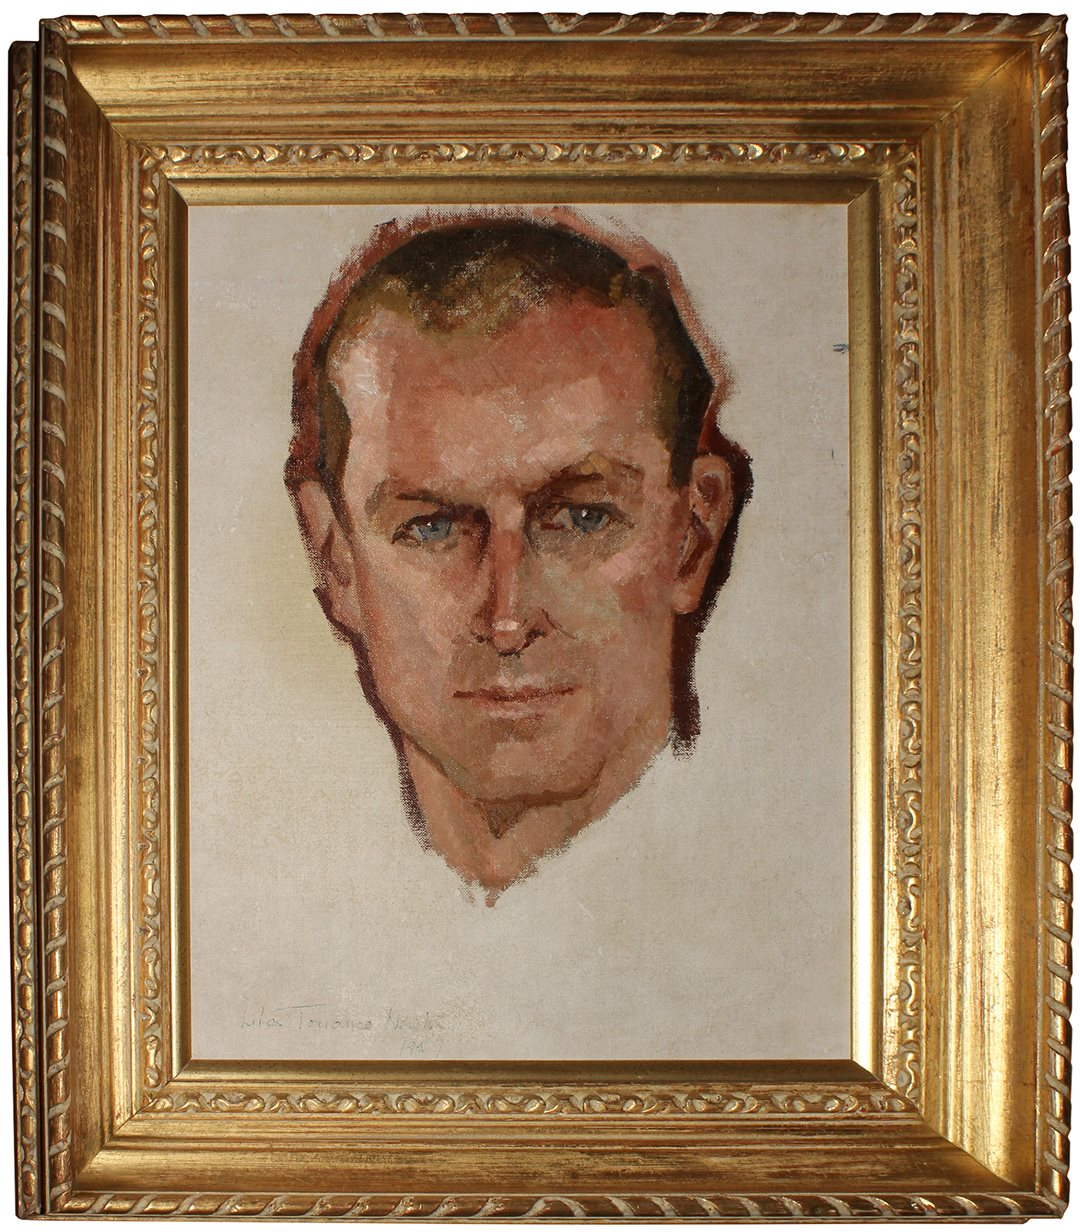 Lilias Torrance Newton's small portrait of Prince Philip hangs in the Reading Room in the Senate of Canada Building. (Image courtesy of the National Capital Commission)